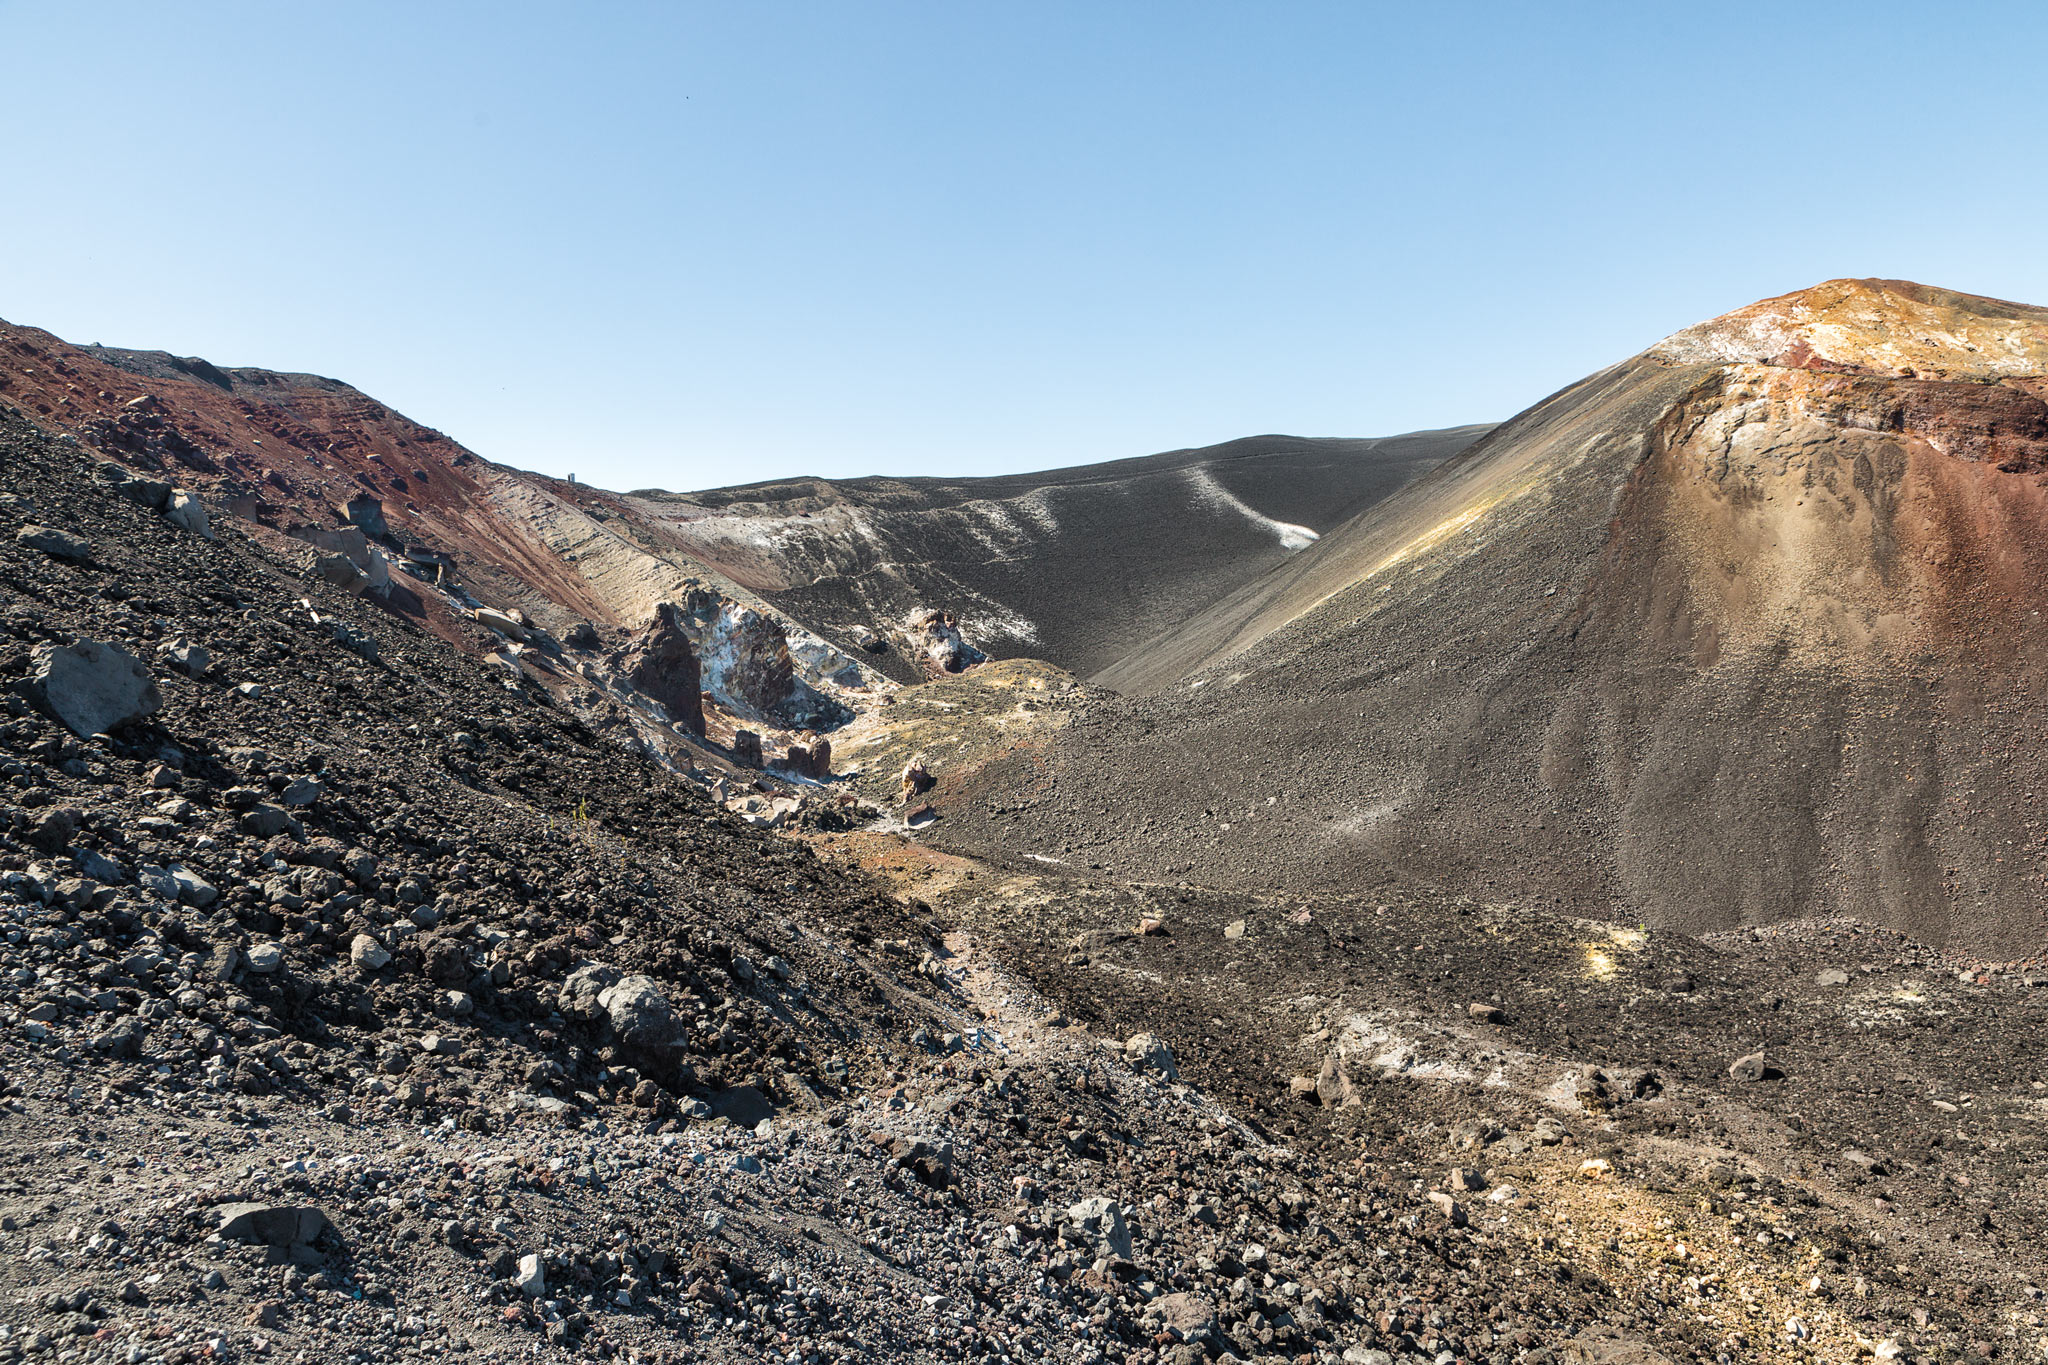 The road to the top of Cerro Negro, one of Nicaragua's many active volcanoes.